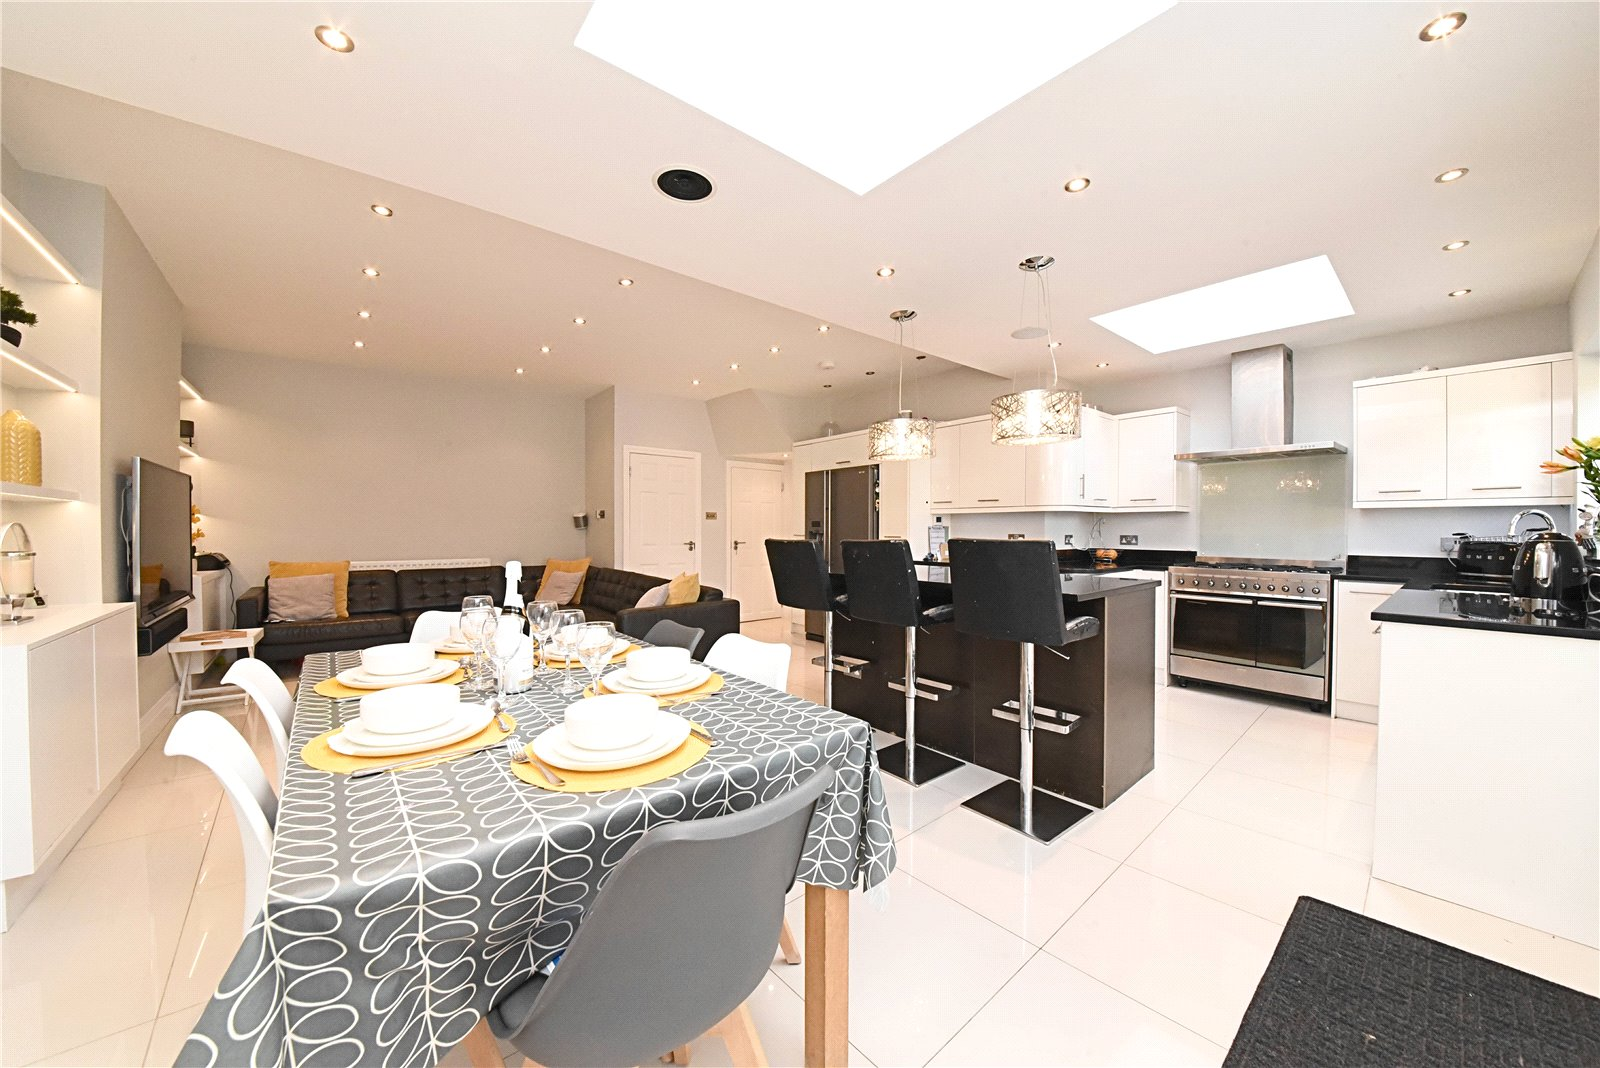 4 bed house for sale in Friern Barnet, N11 1HN 1